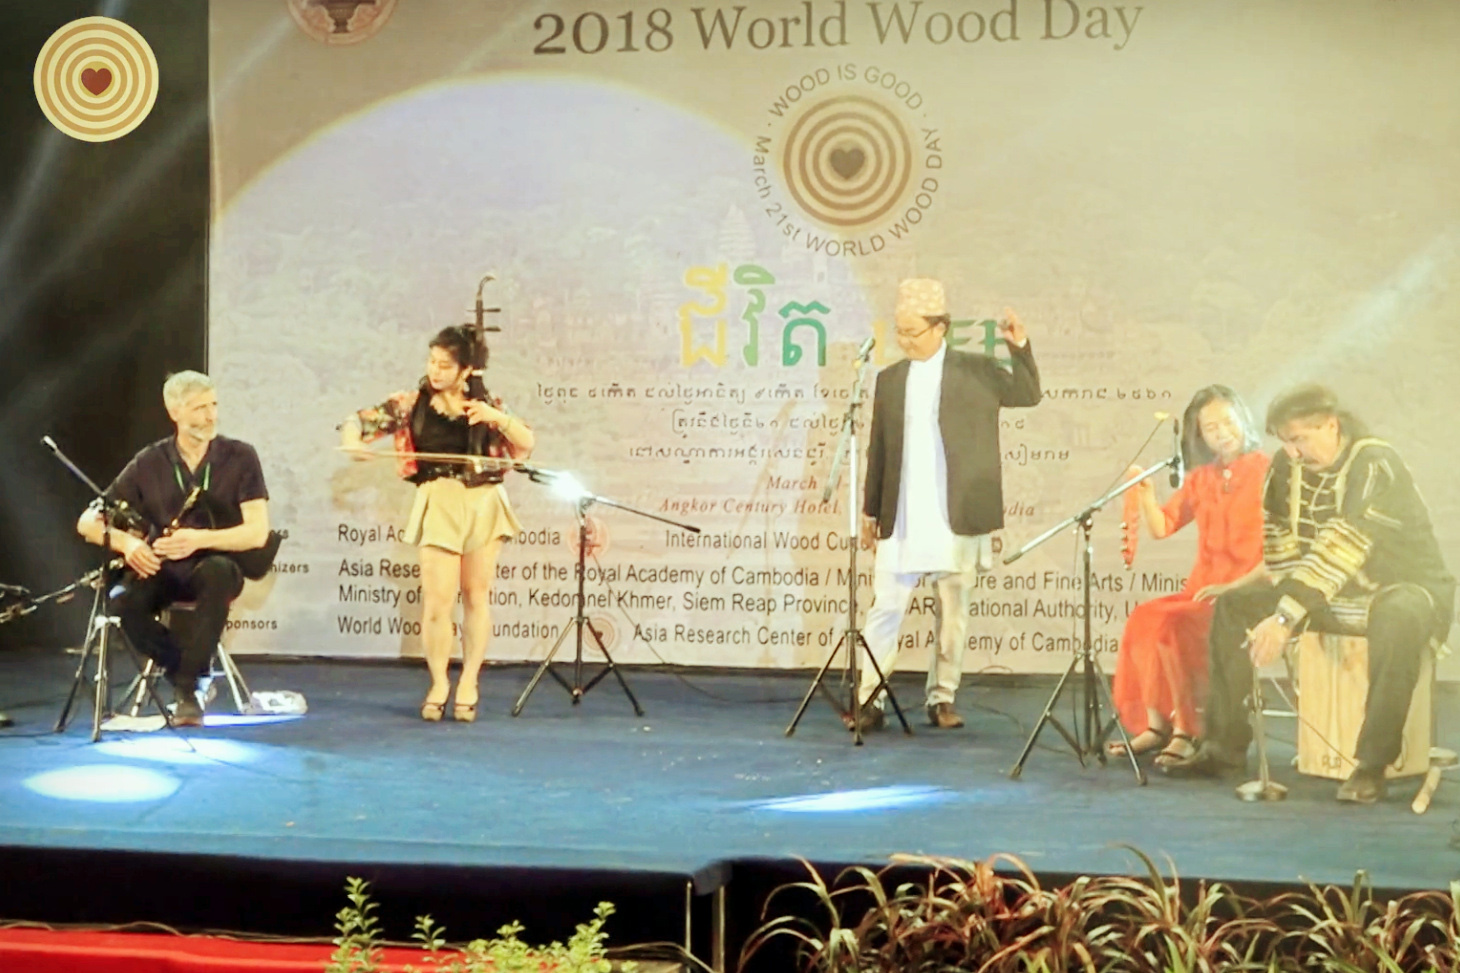 #World Wood Day 2018 #Music Festival #Cambodia